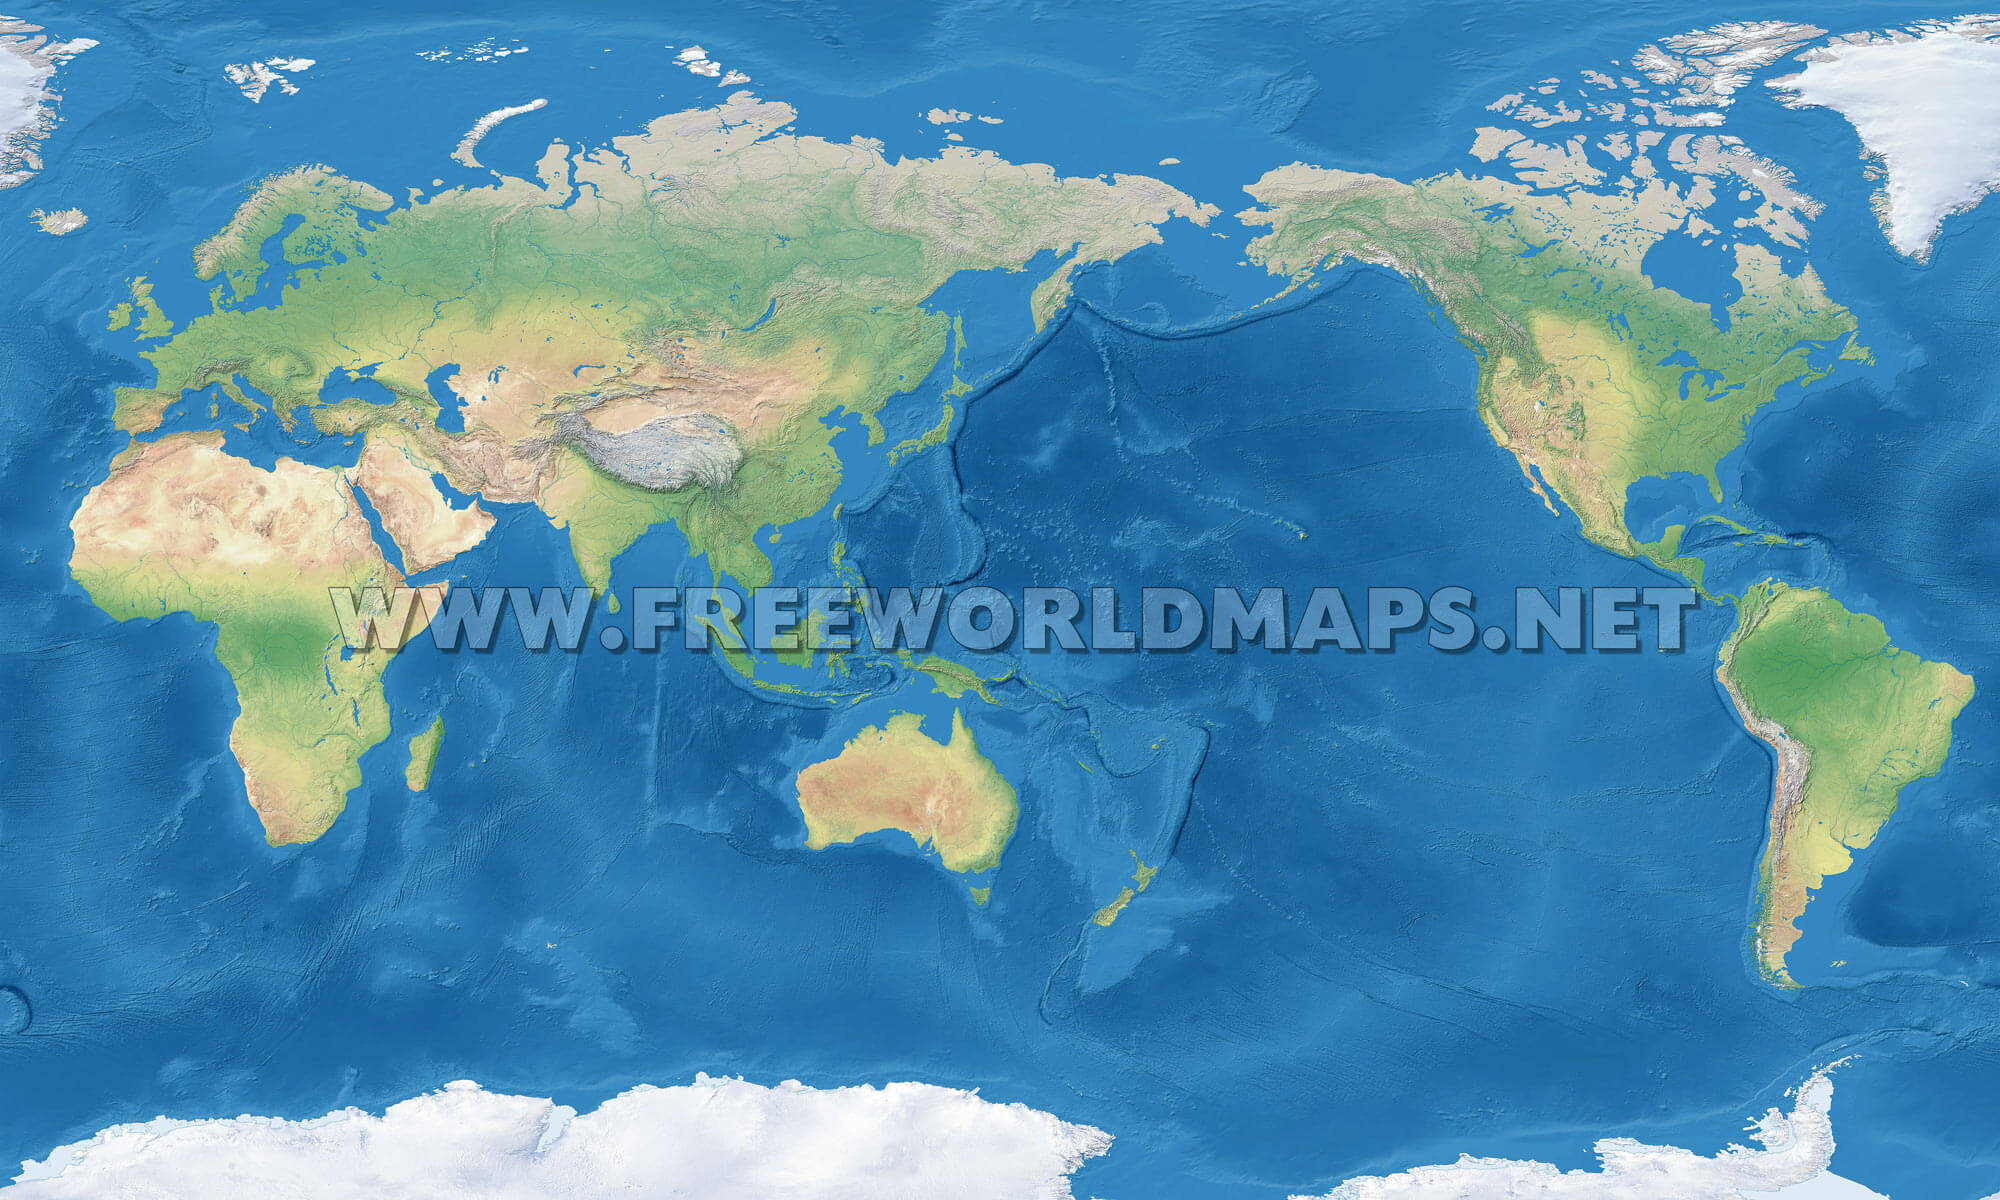 Download free world maps download asia centered world map gumiabroncs Choice Image